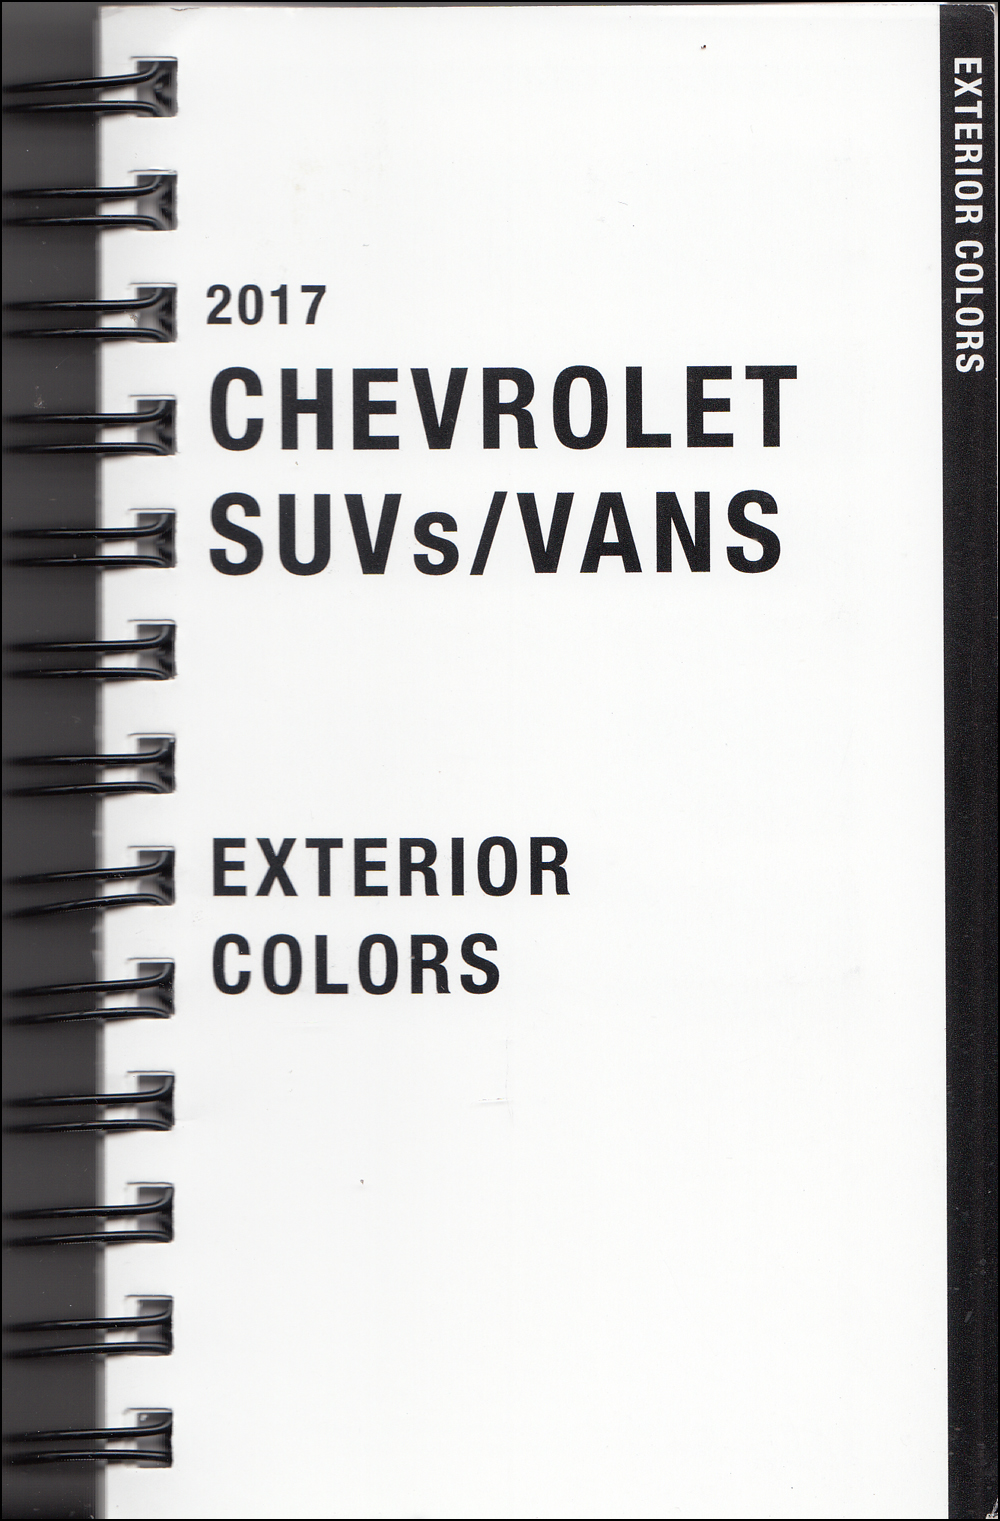 2017 Chevrolet SUV & Vans Data Book with Color & Upholstery Original